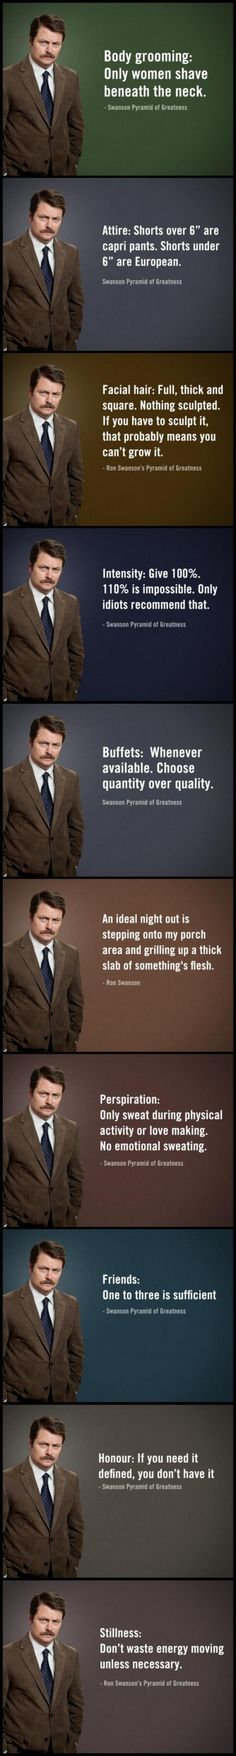 Pyramid of Greatness. Swanson Pyramid of Greatness. The perfect man.Swanson Pyramid of Greatness. The perfect man. Pyramid Of Greatness, Parks And Recs, Funny Quotes, Funny Memes, Tv Quotes, Life Quotes, Lol, Parks And Recreation, Life Humor